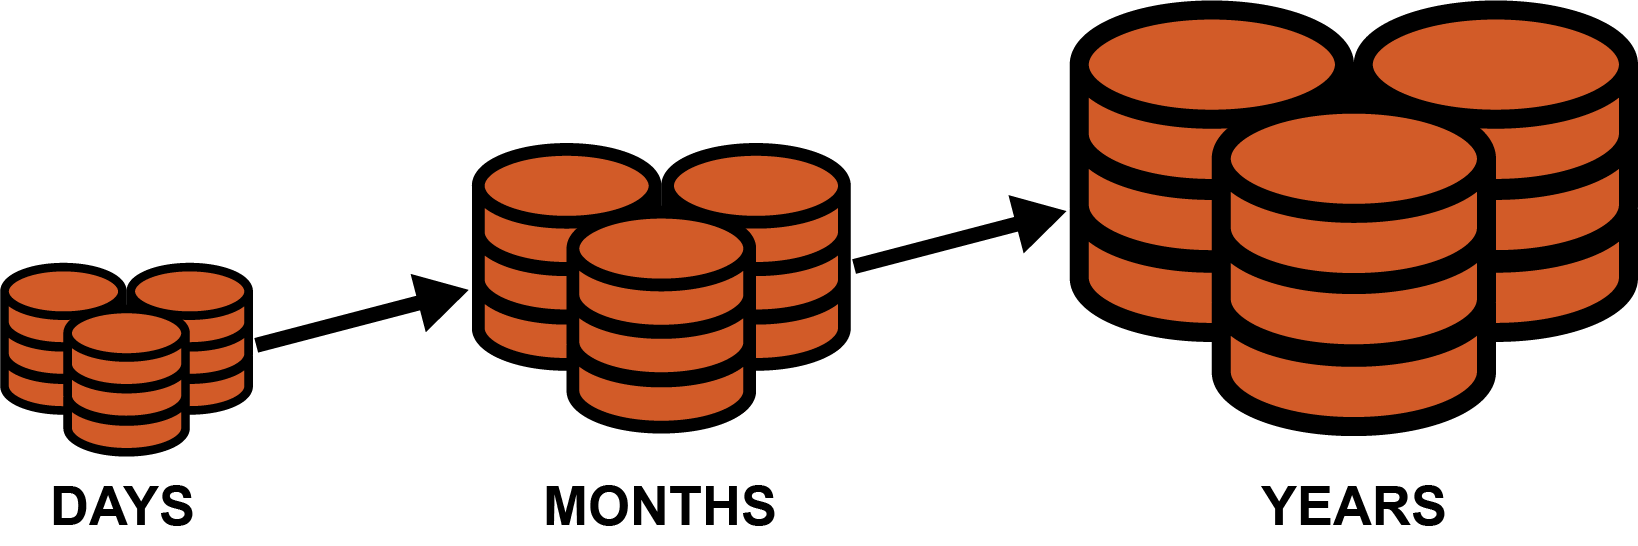 Sentrywire Storage Days Months Years Graphic Black 1.png